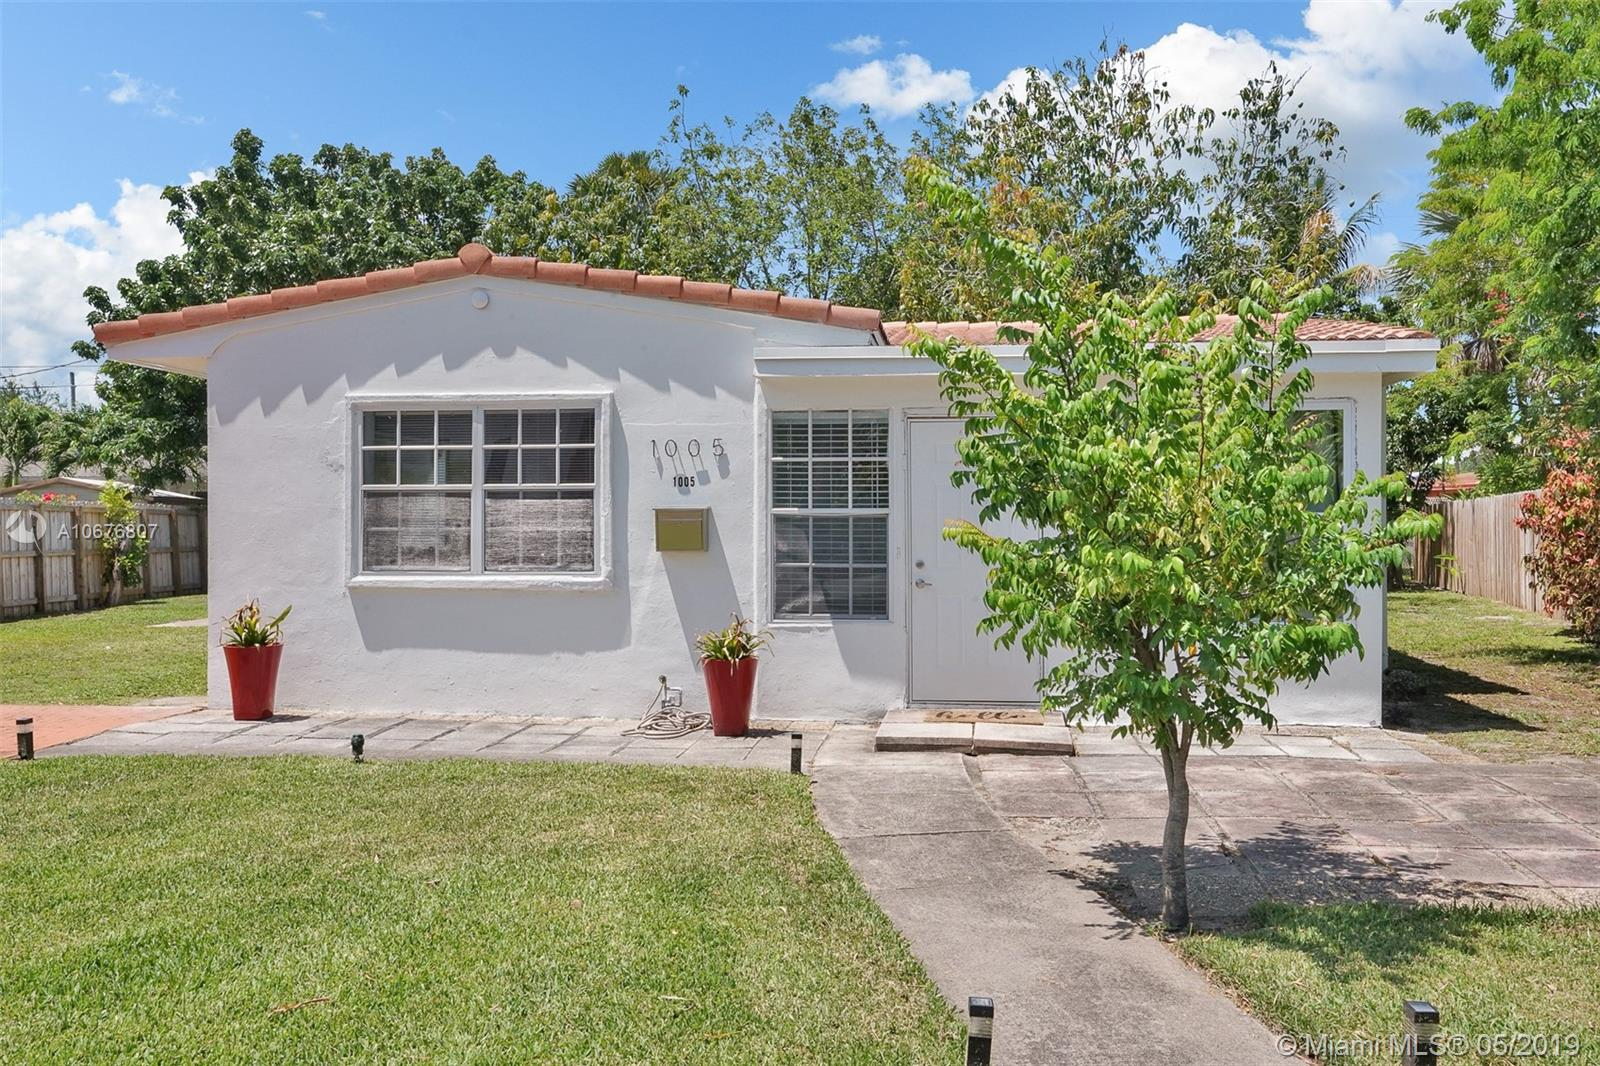 RENOVATED 2/1 IN QUIET MIDDLE RIVER TERRACE.  BEAUTIFULLY RESTORED TERAZZO FLOORS, GORGEOUS KITCHEN, AMPLE LIVING AND DINING AREAS, LAUNDRY AND STORAGE ROOM IN ADDITION TO A LARGE STORAGE SHED. THIS WONDERFUL HOME IS 8 MINUTES TO GALLERIA MALL, FORT LAUDERDALE BEACH AND MINUTES TO DOWNTOWN FORT LAUDERDALE.  LARGE 7550 LOT WITH ROOM FOR EXPANSION. ENJOY THE BACKYARD WITH AMAZING FRUIT TREES; LYCHEE, MANGO, AVOCADO AND MORE.  MAKE IT YOUR OWN TODAY.